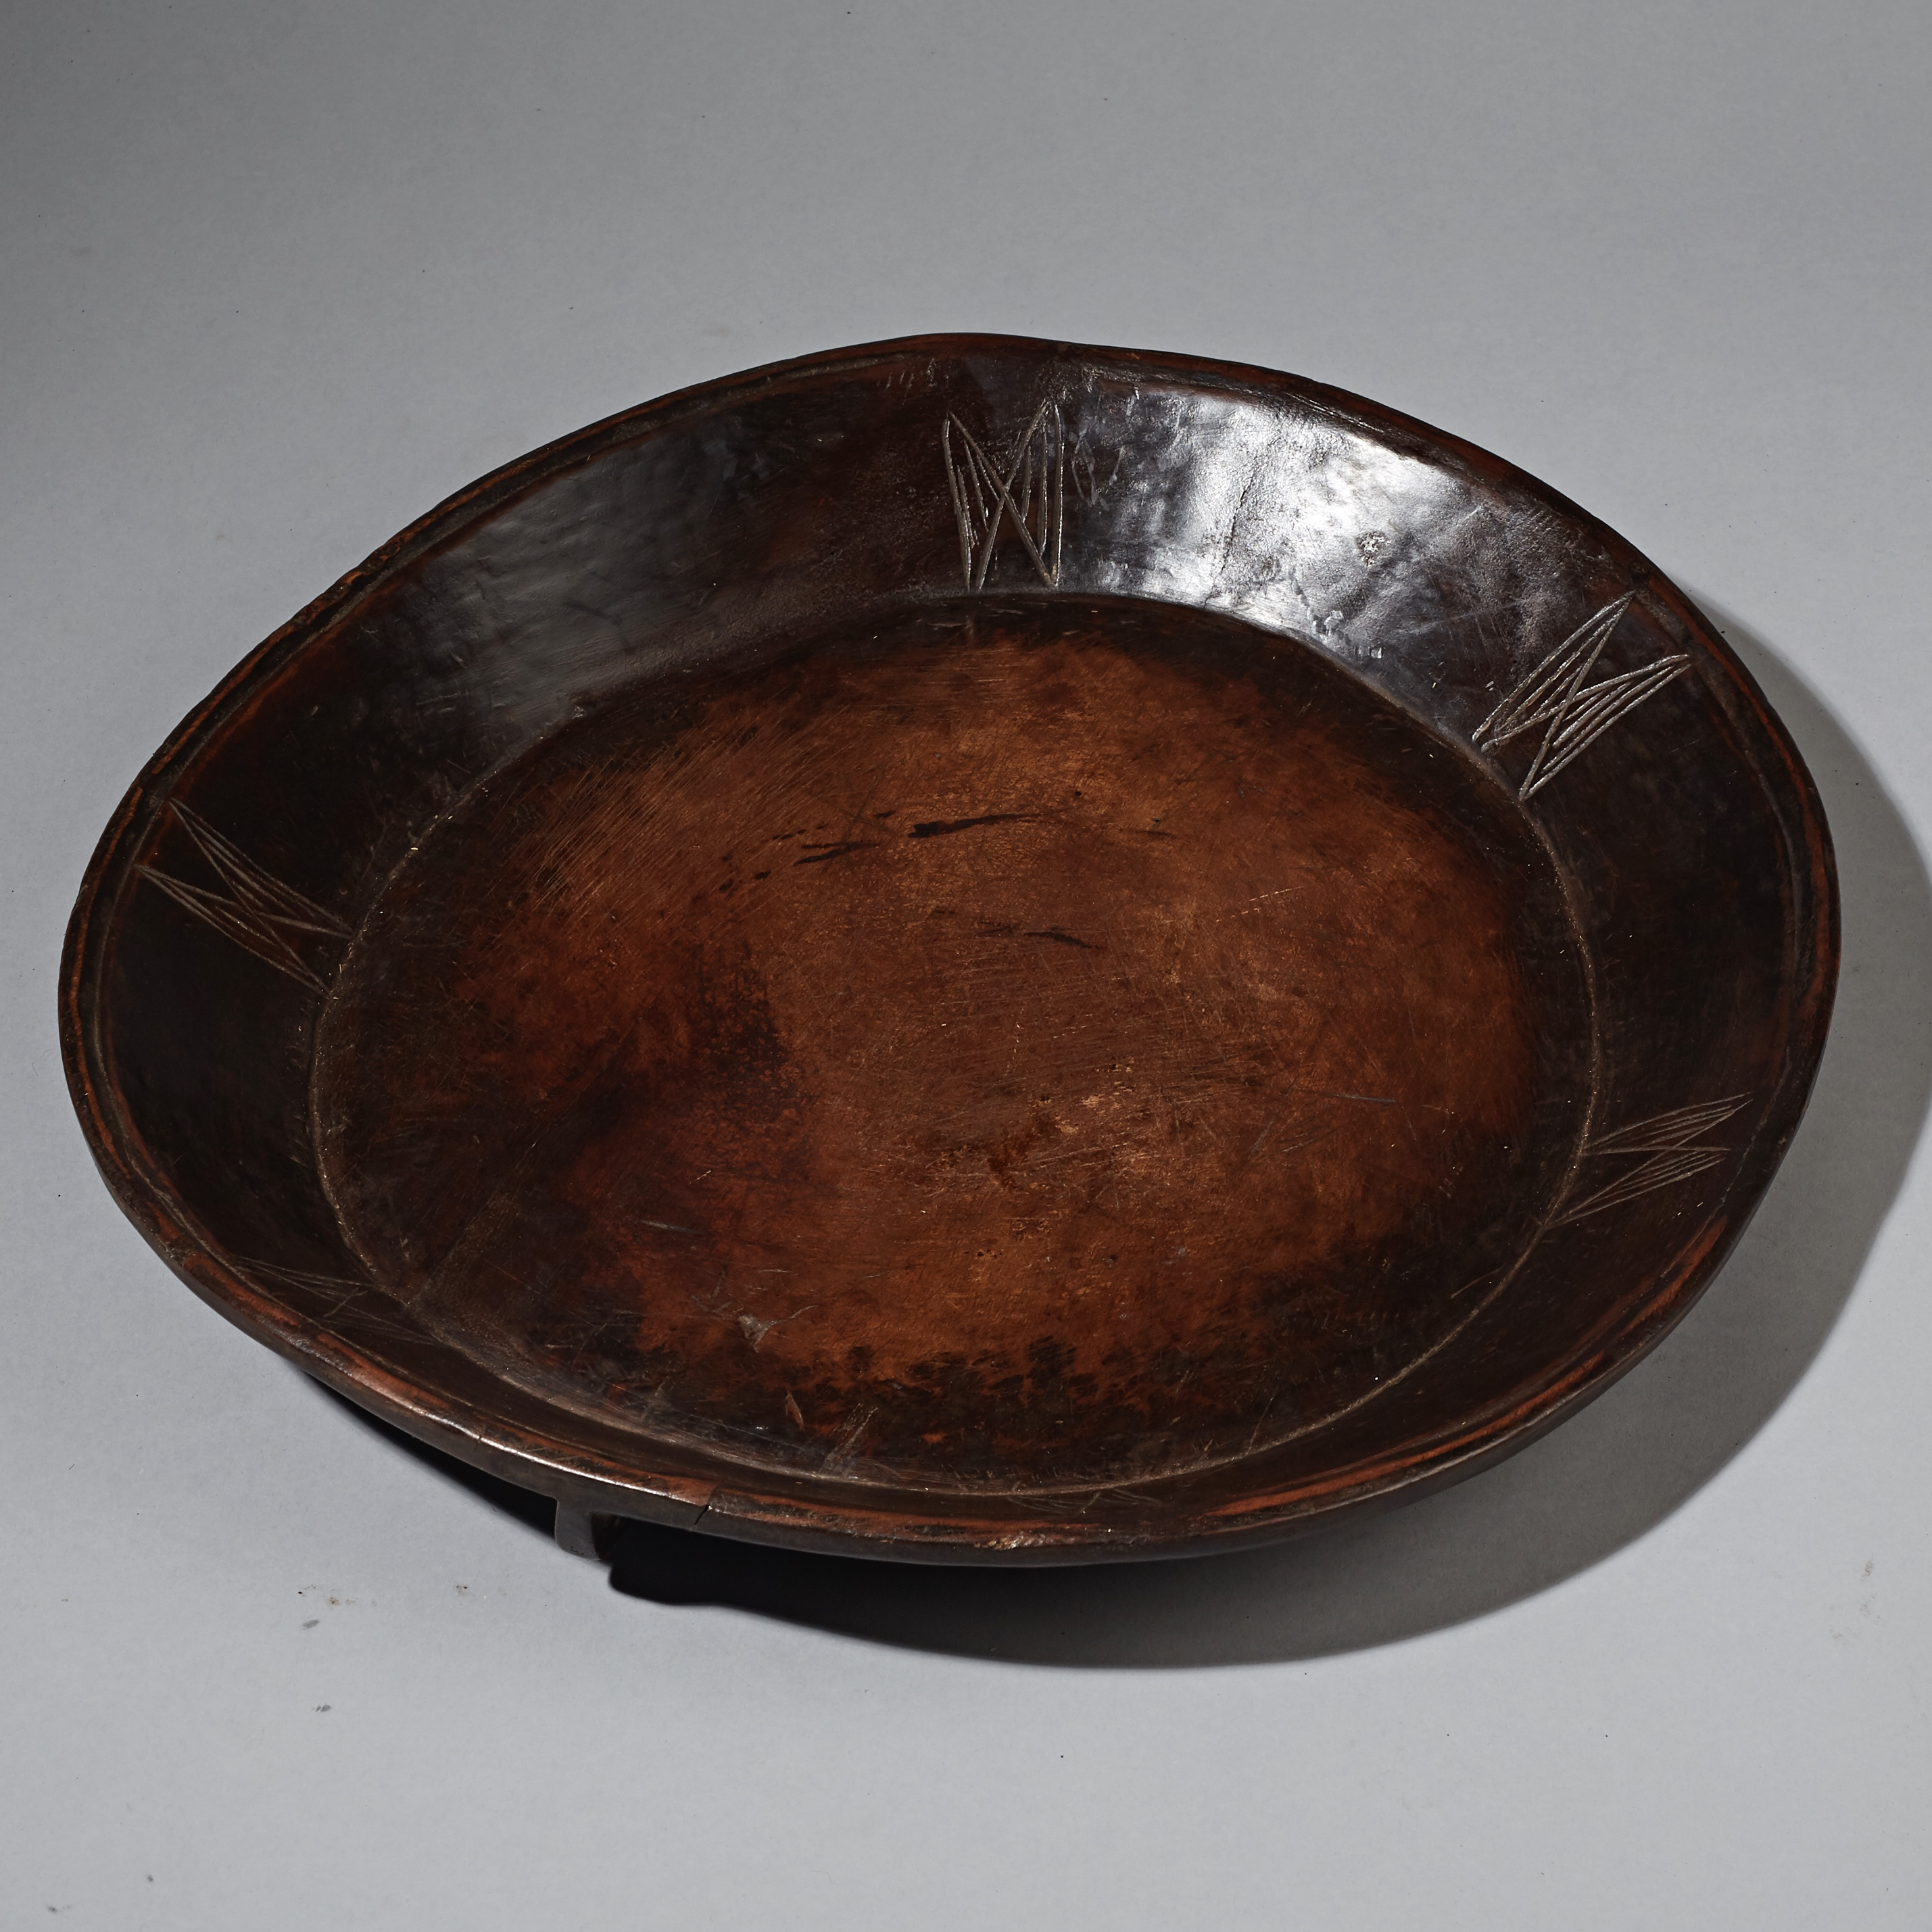 A  LOVELY ETHIOPIAN WOOD SERVING TRAY WITH LUSH PATINA ( No 2364 )